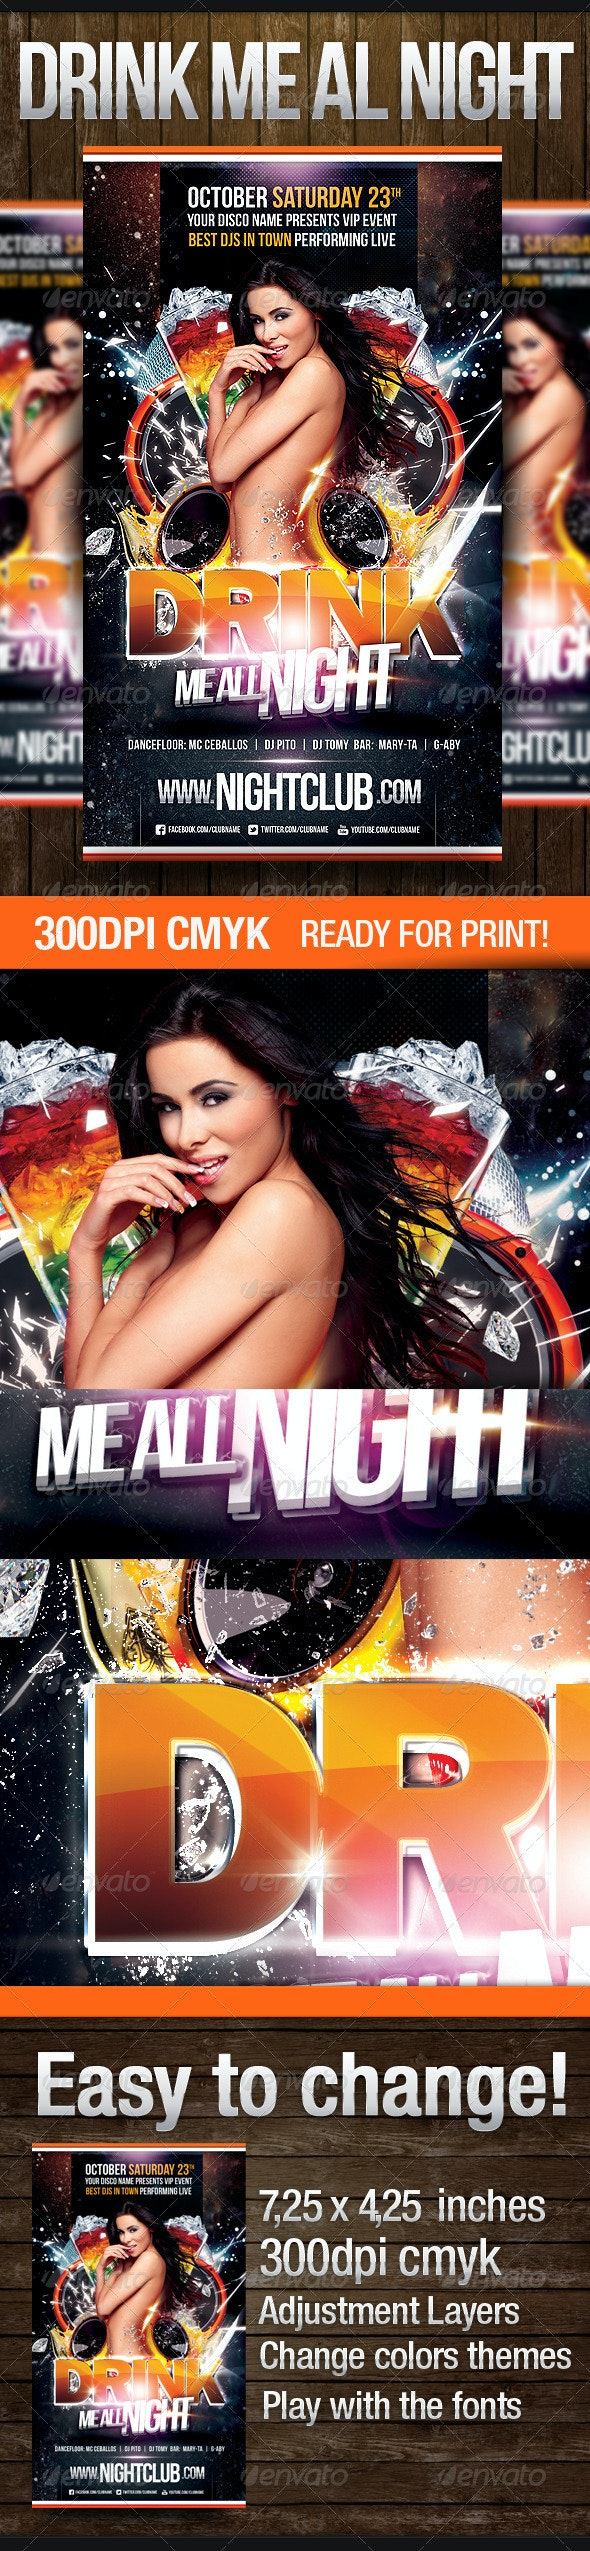 Drink Me All Night Party Flyer - Clubs & Parties Events